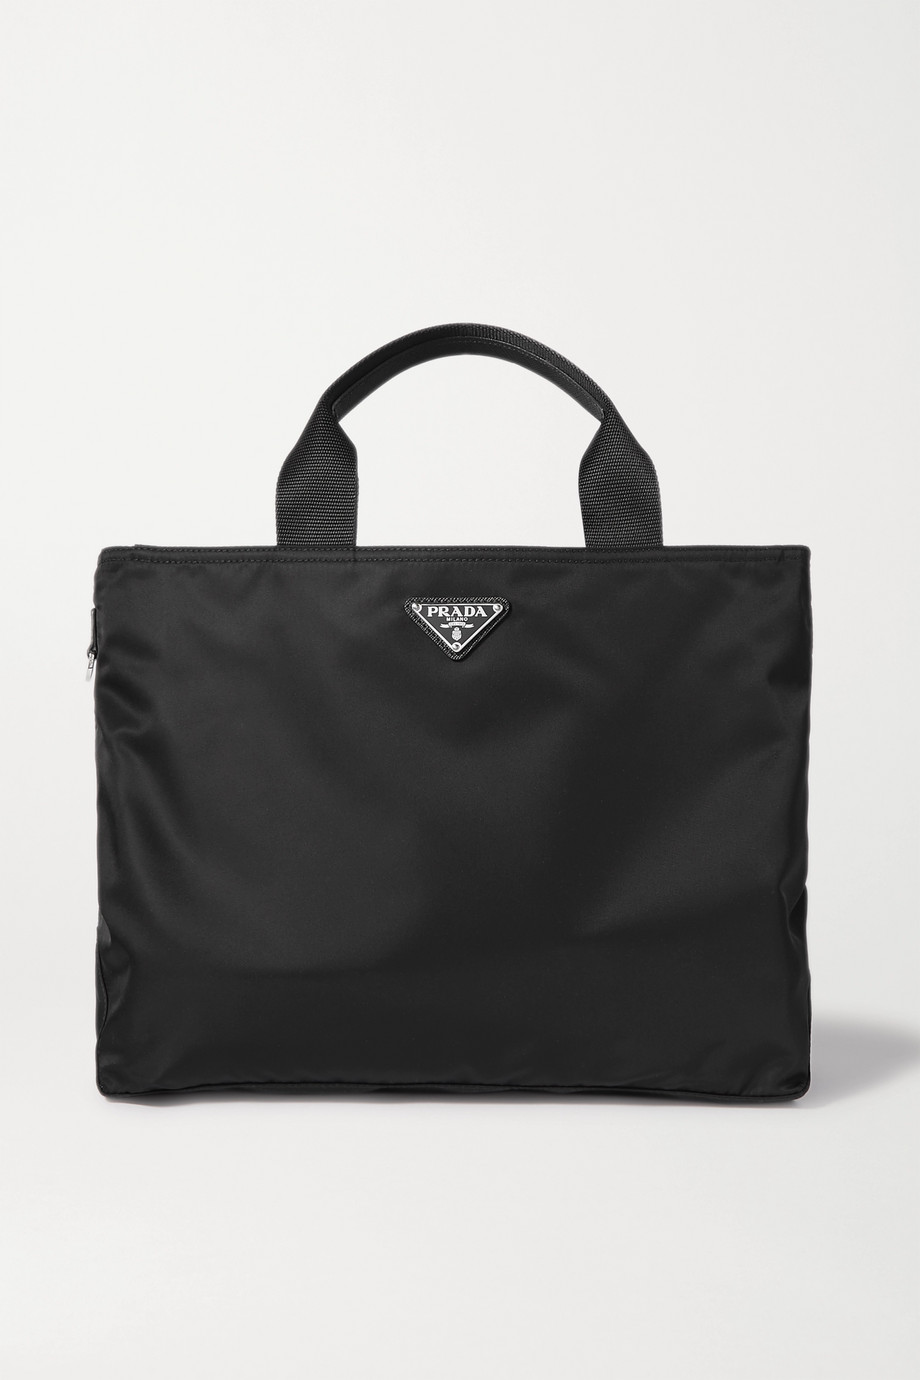 Prada Vela textured leather-trimmed nylon tote